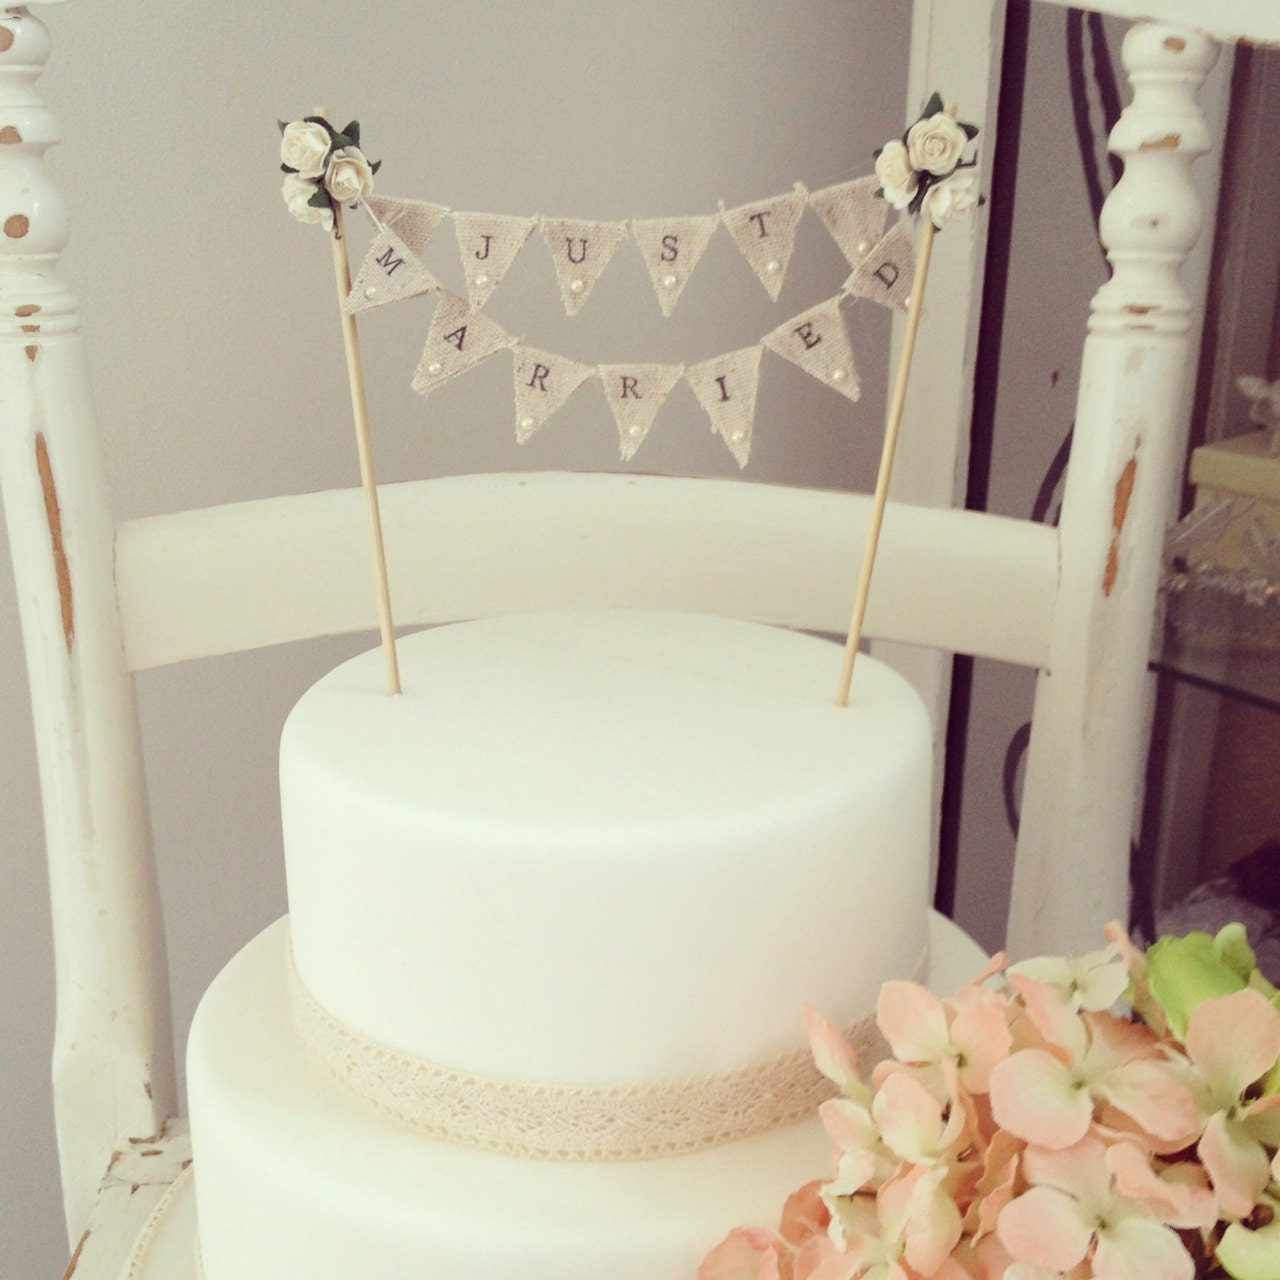 Cake Toppers Etsy Uk : Fabric Bunting Wedding Cake Topper by TheLittleTiaraRoom ...